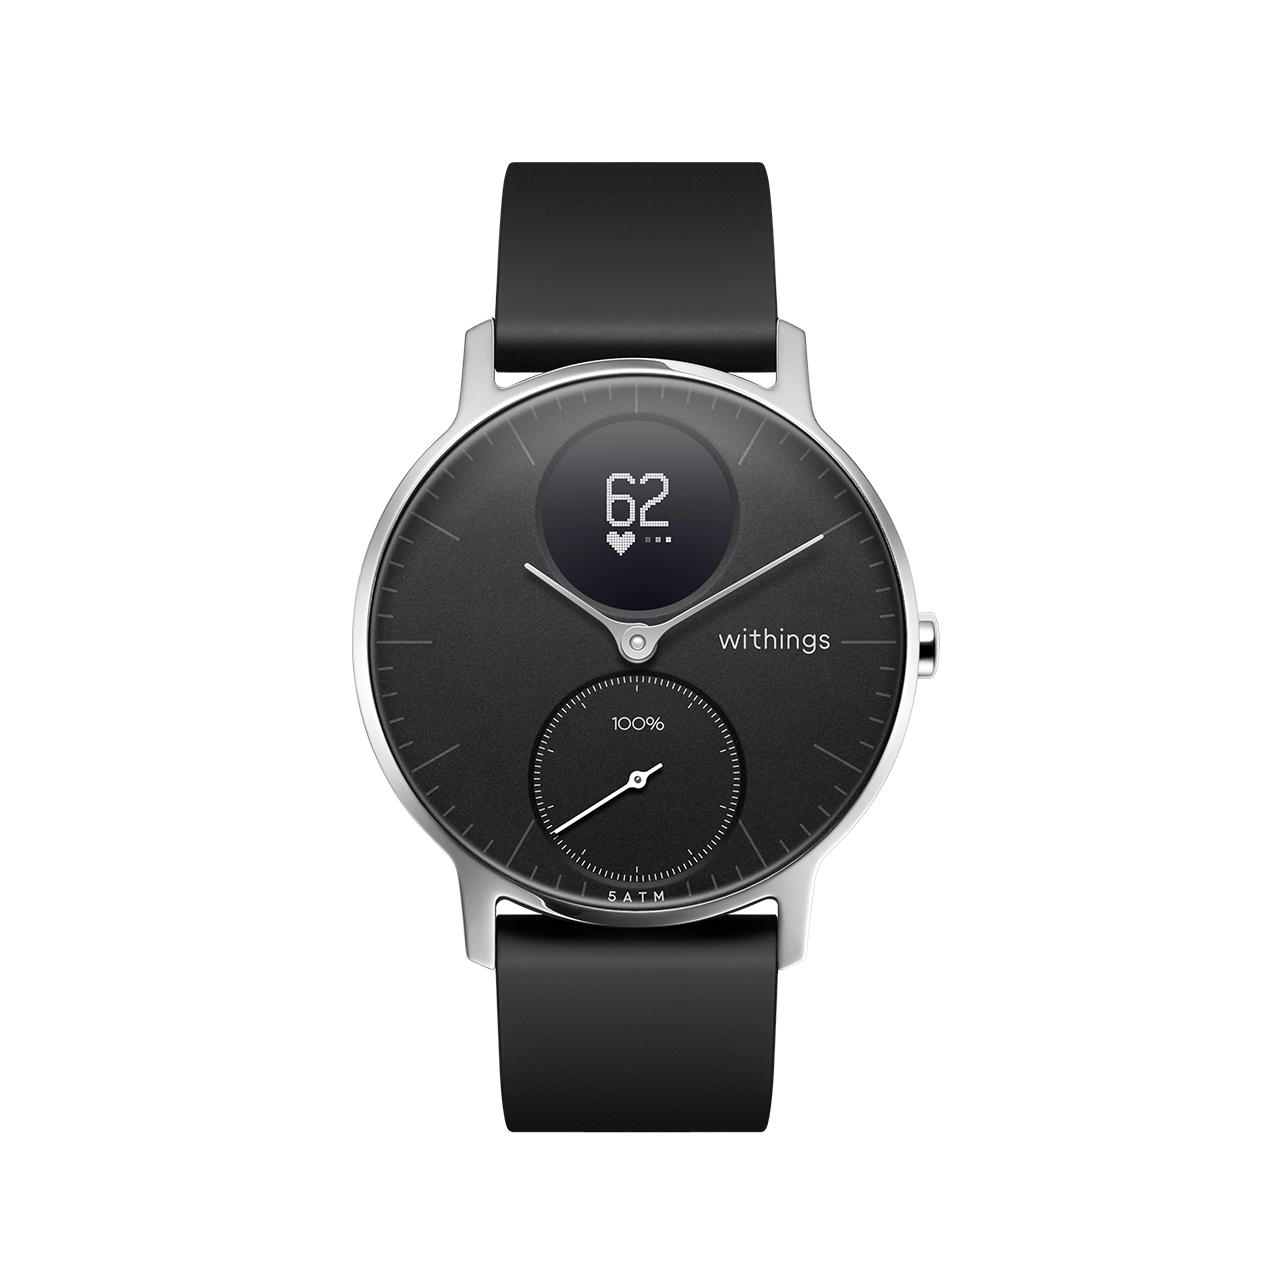 Withings Steel HR (Nokia), 36mm, Noir - Montre connectee hybride - Rythme cardiaque, Notifications - Boutique Officielle Withings